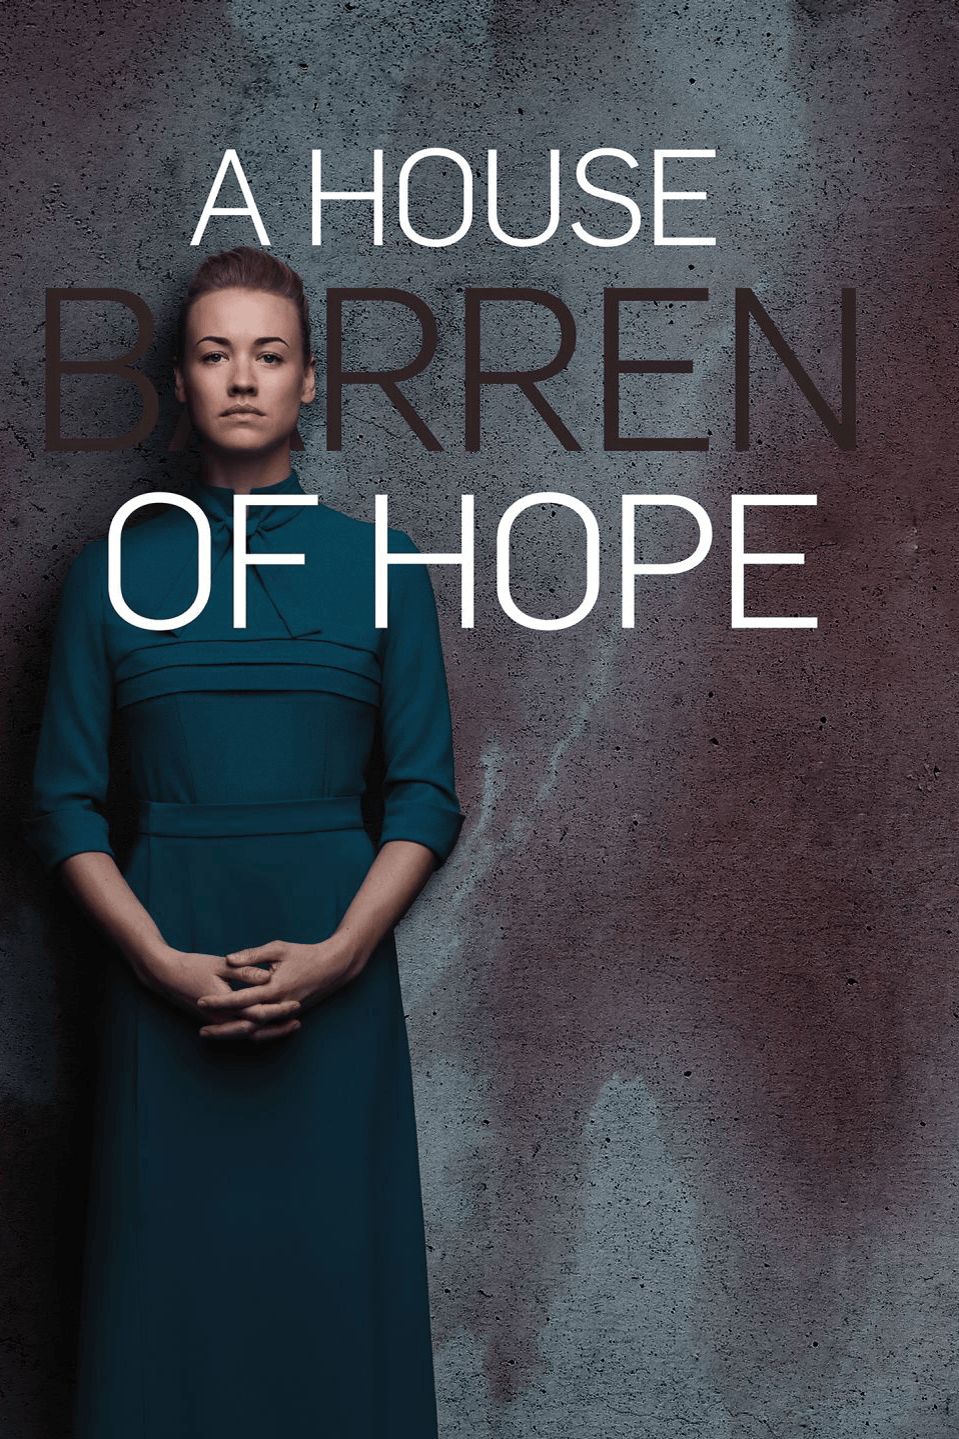 Serena Joy | The Handmaid's Tale Wiki | FANDOM powered by Wikia